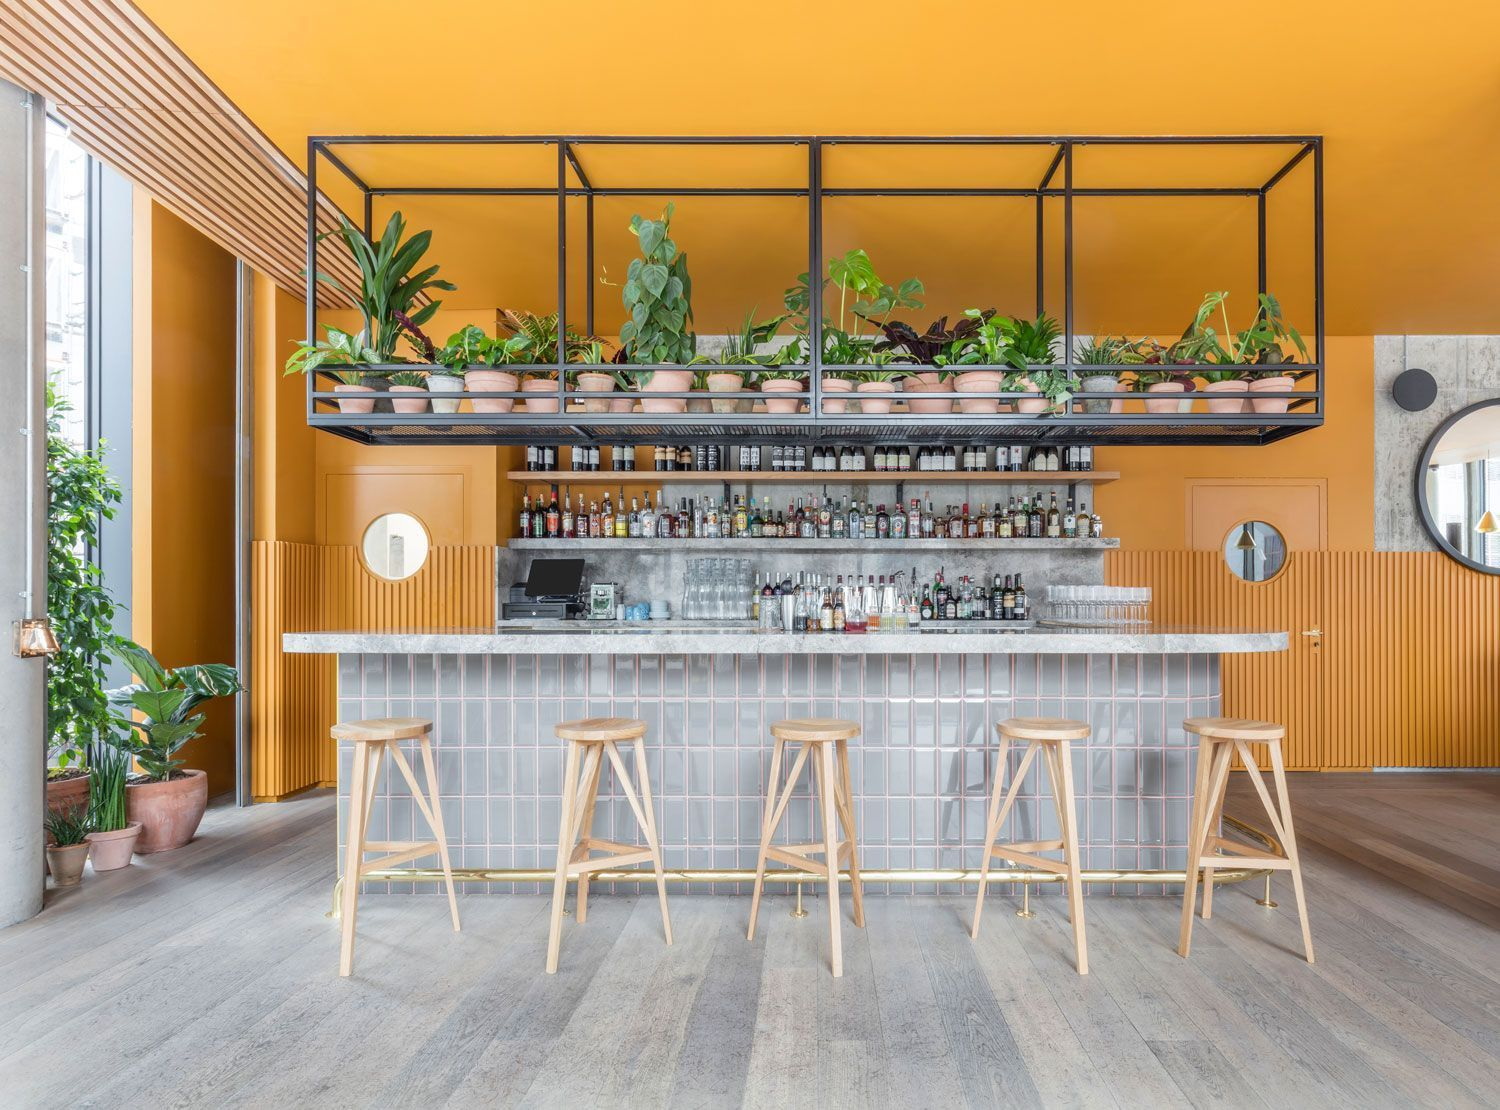 Intended to accommodate both formal & casual encounters, Treves & Hyde is a  new restaurant